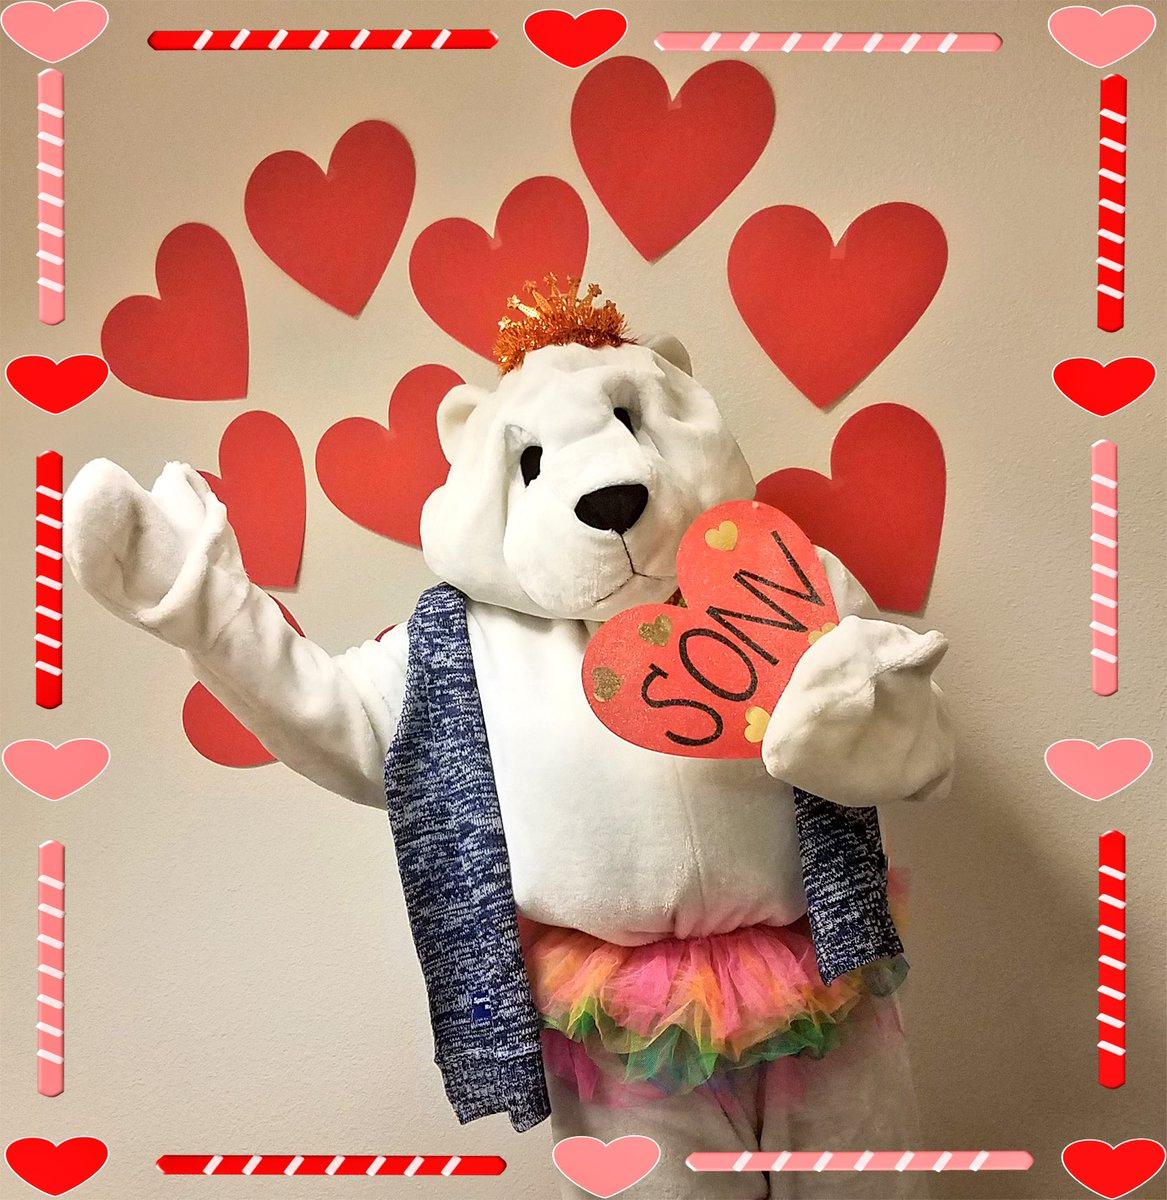 Happy #ValentinesDay! Follow your heart by registering for the #PolarPlunge & tell us what you LOVE about @SpecialOlympics! ❤️ https://t.co/jwY0h4nxBb